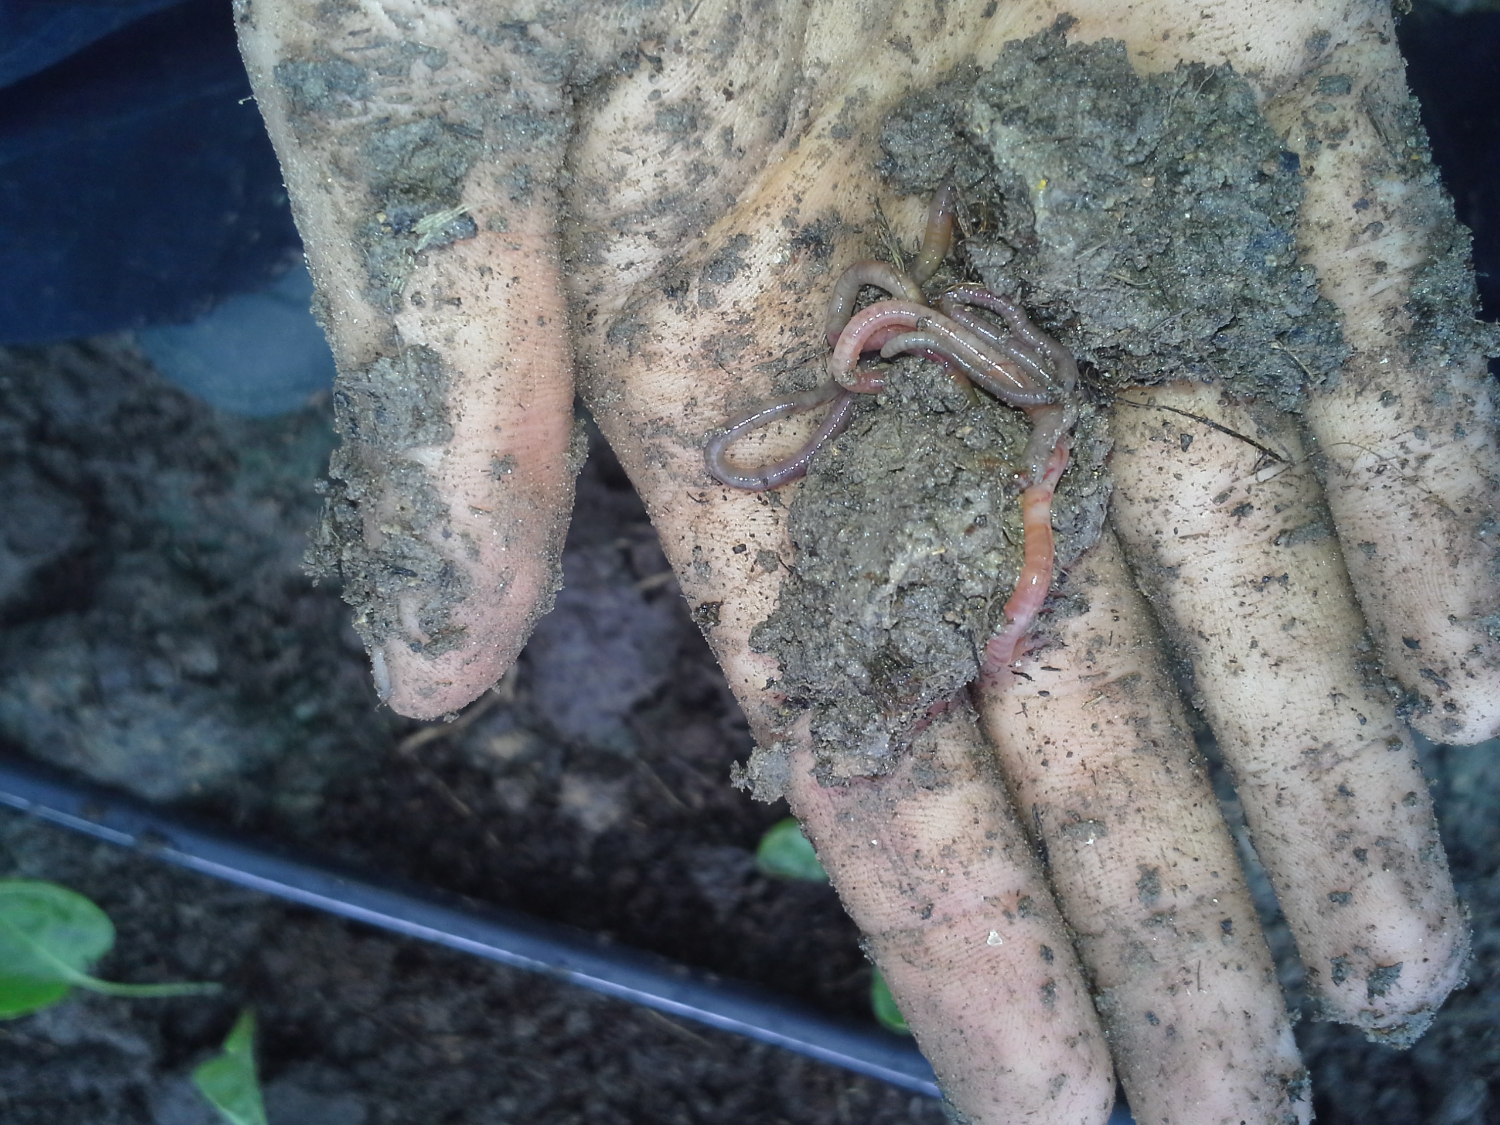 So many earthworms were found while transplanting our brussels sprouts! Yay!